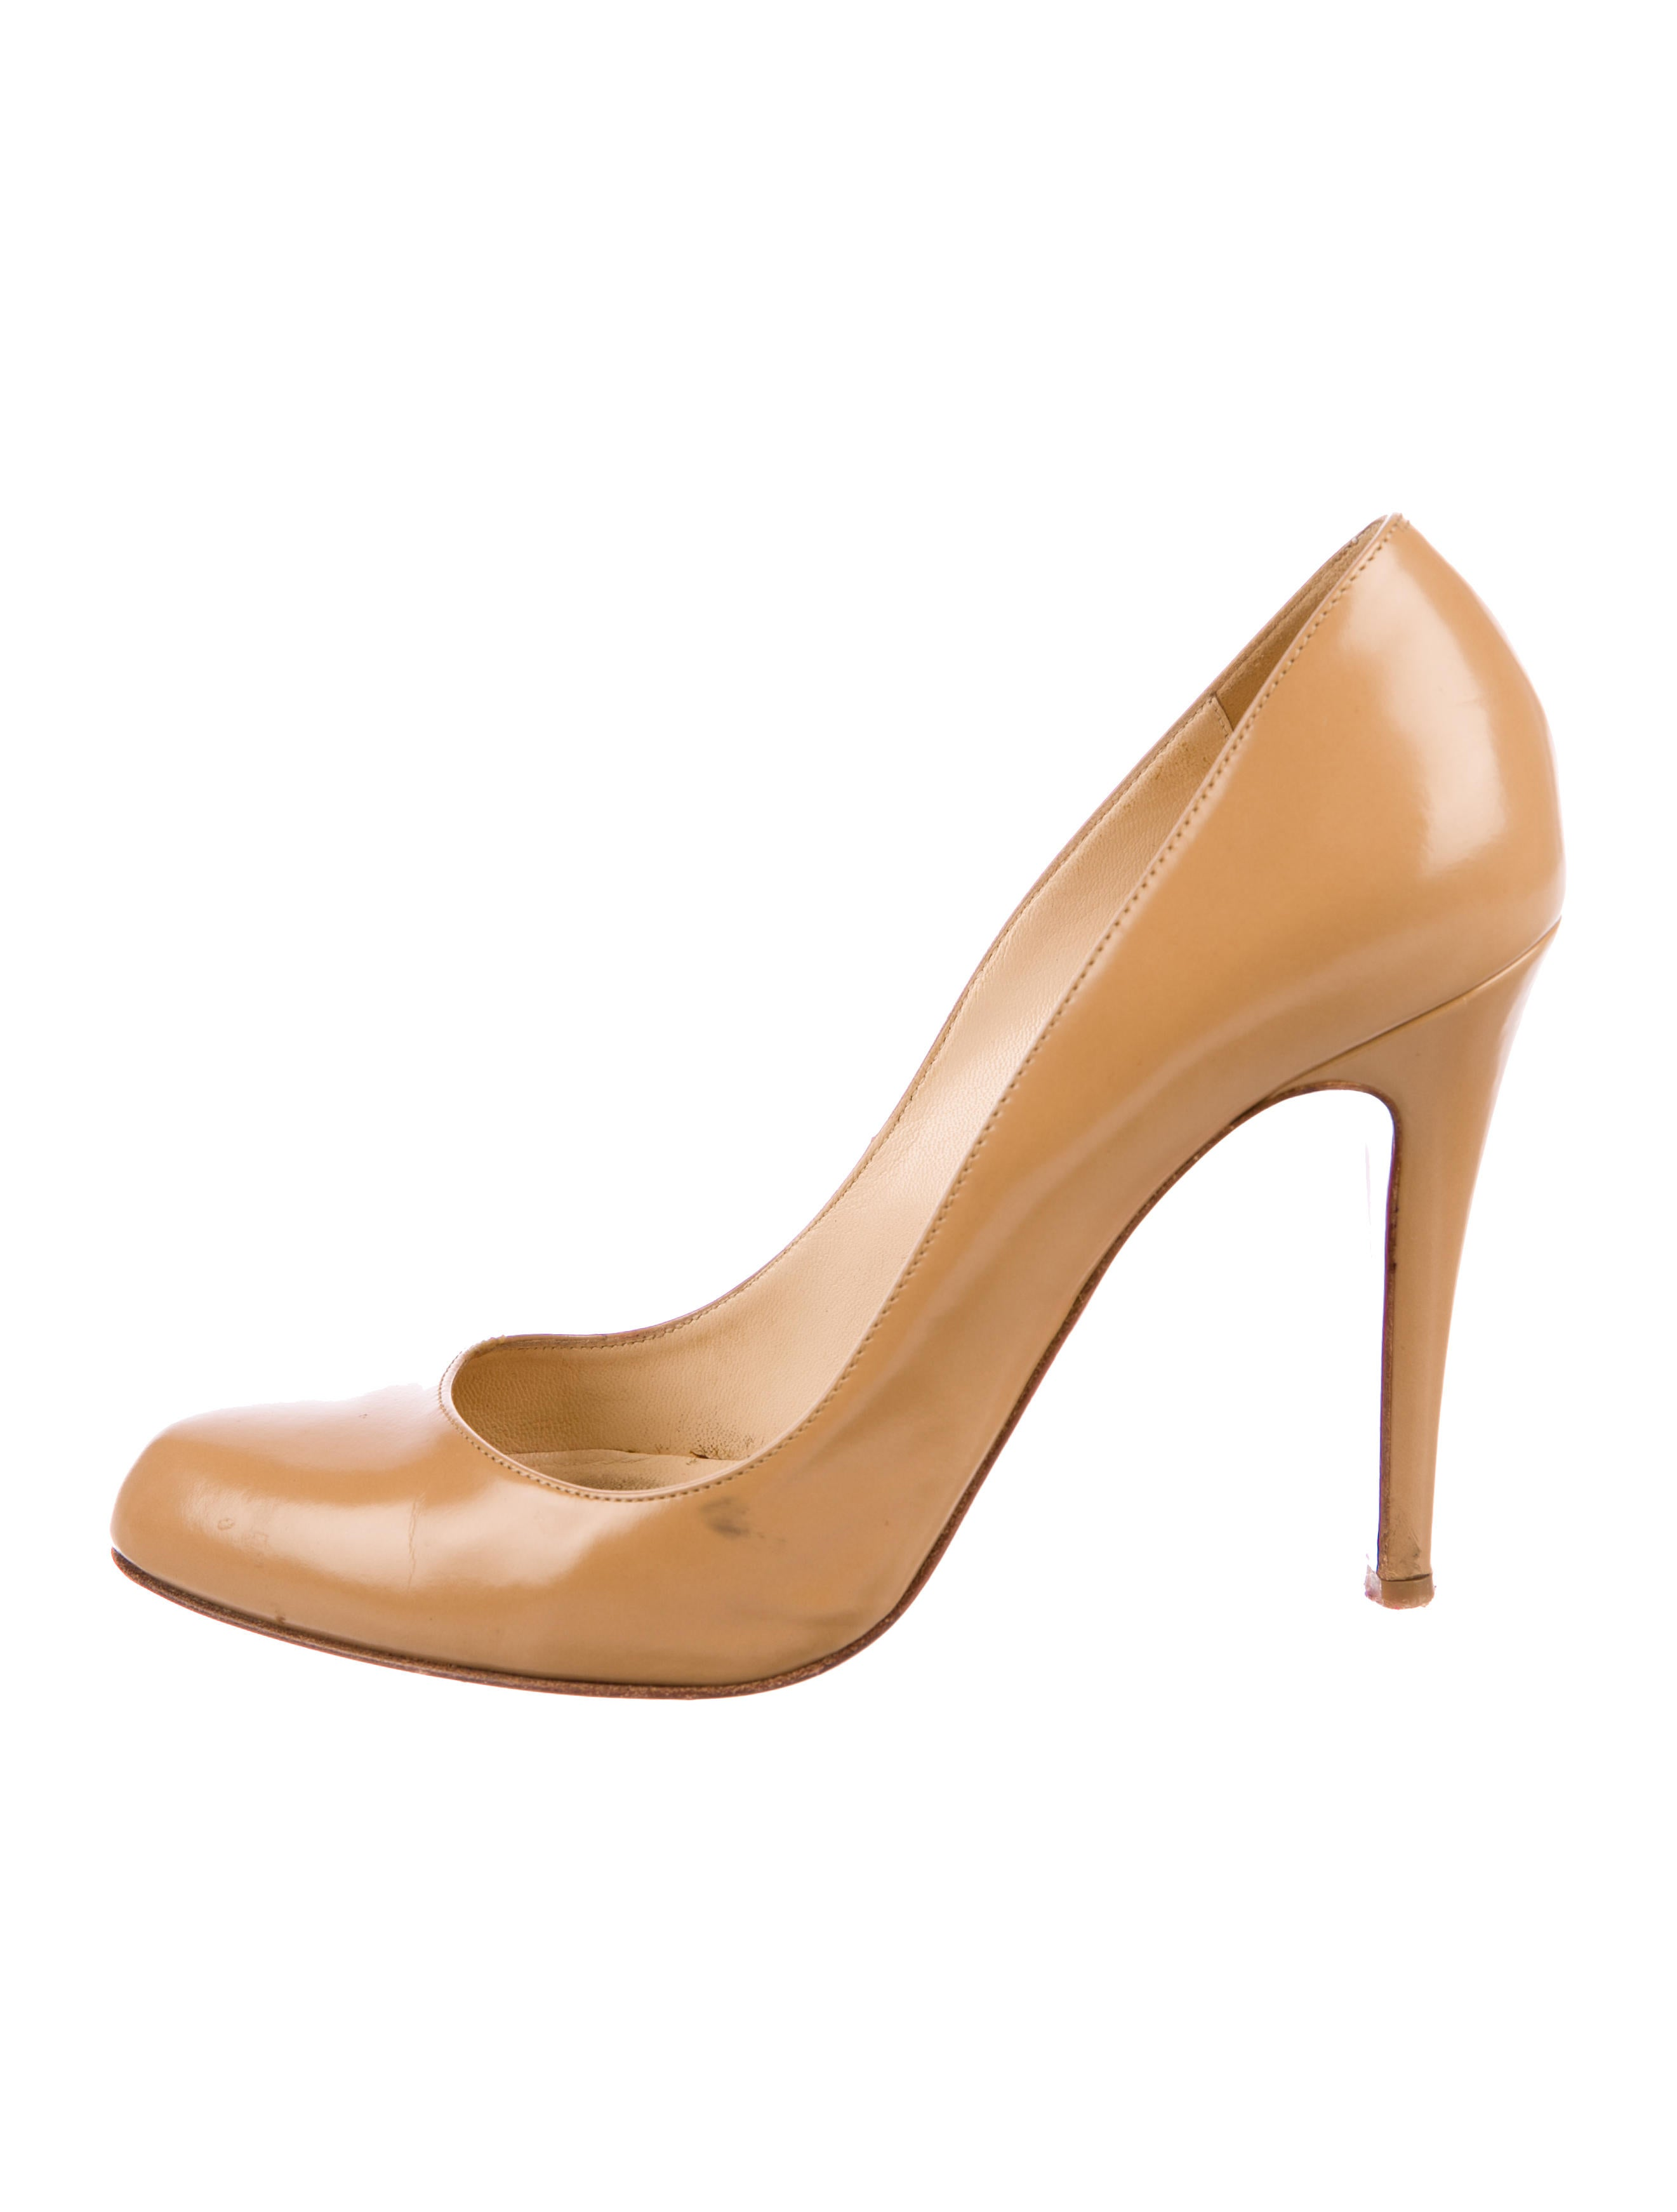 new style 7ffe6 e7537 Ron Ron Leather Pumps